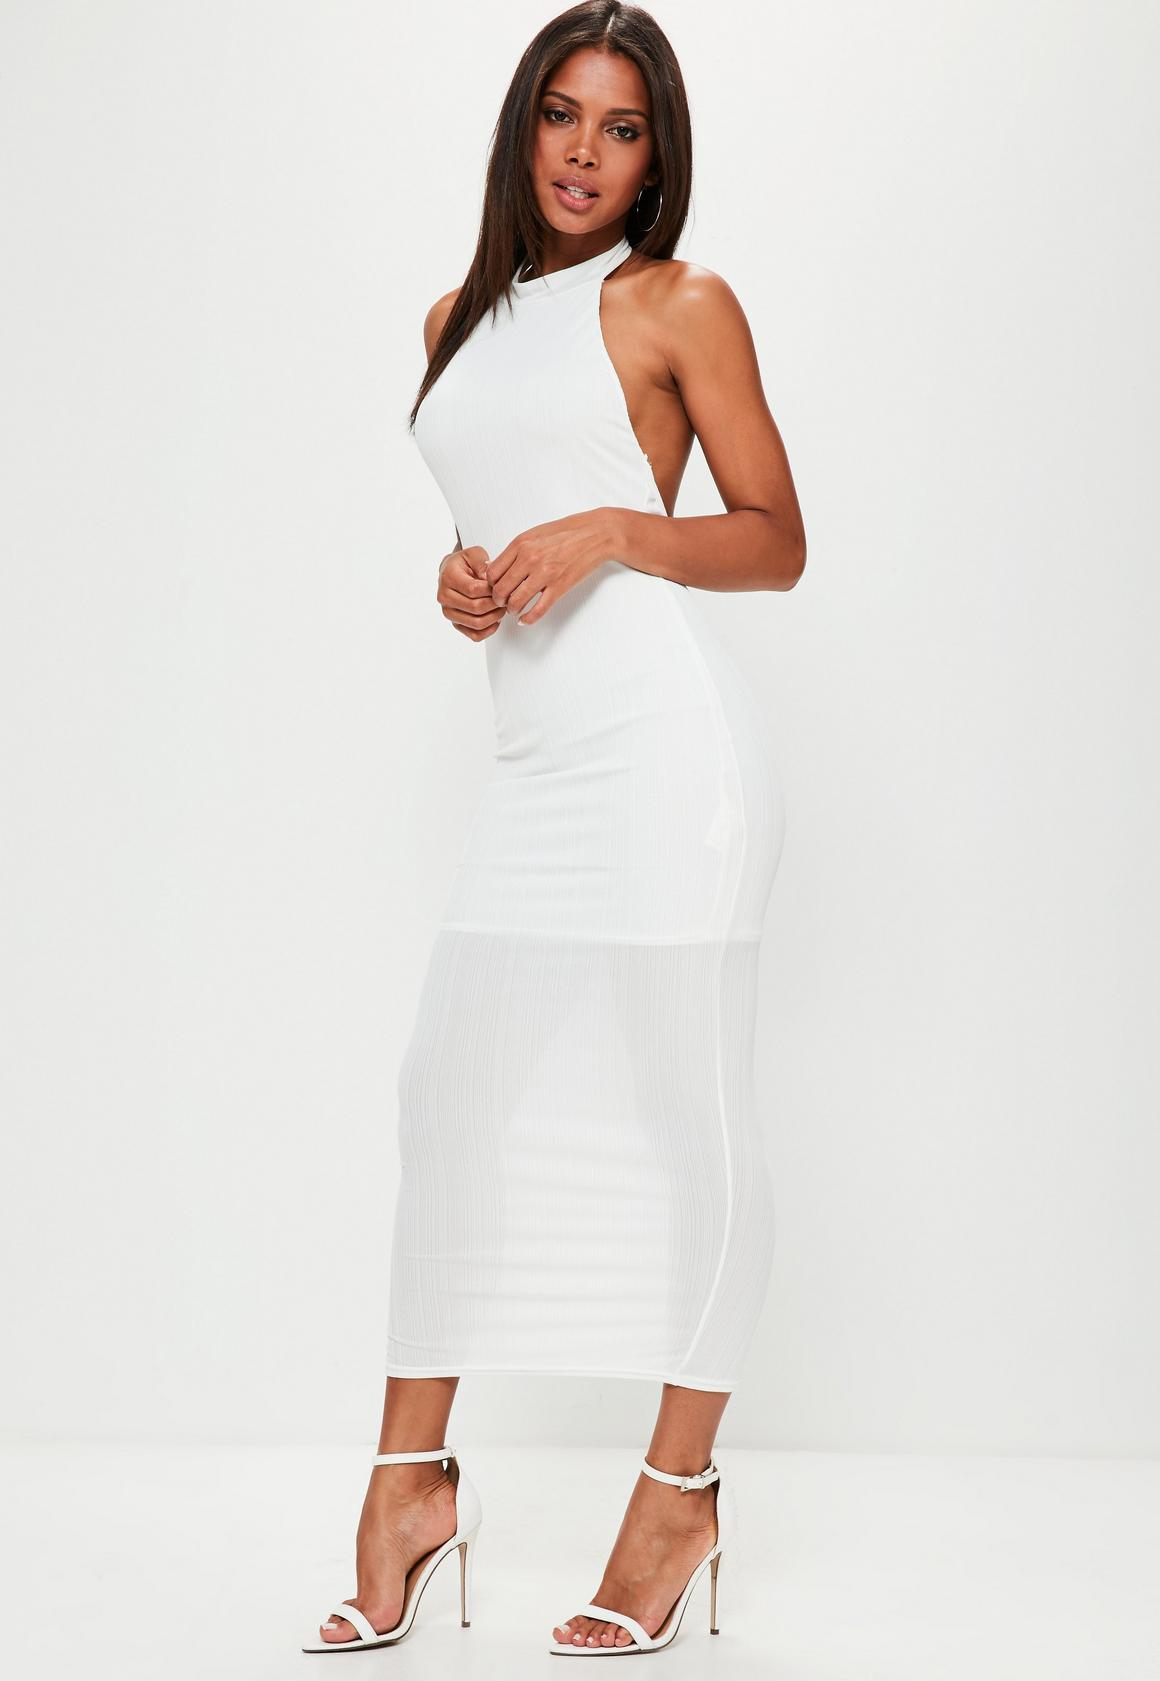 Halter Neck Dresses | Shop Halterneck Dresses - Missguided